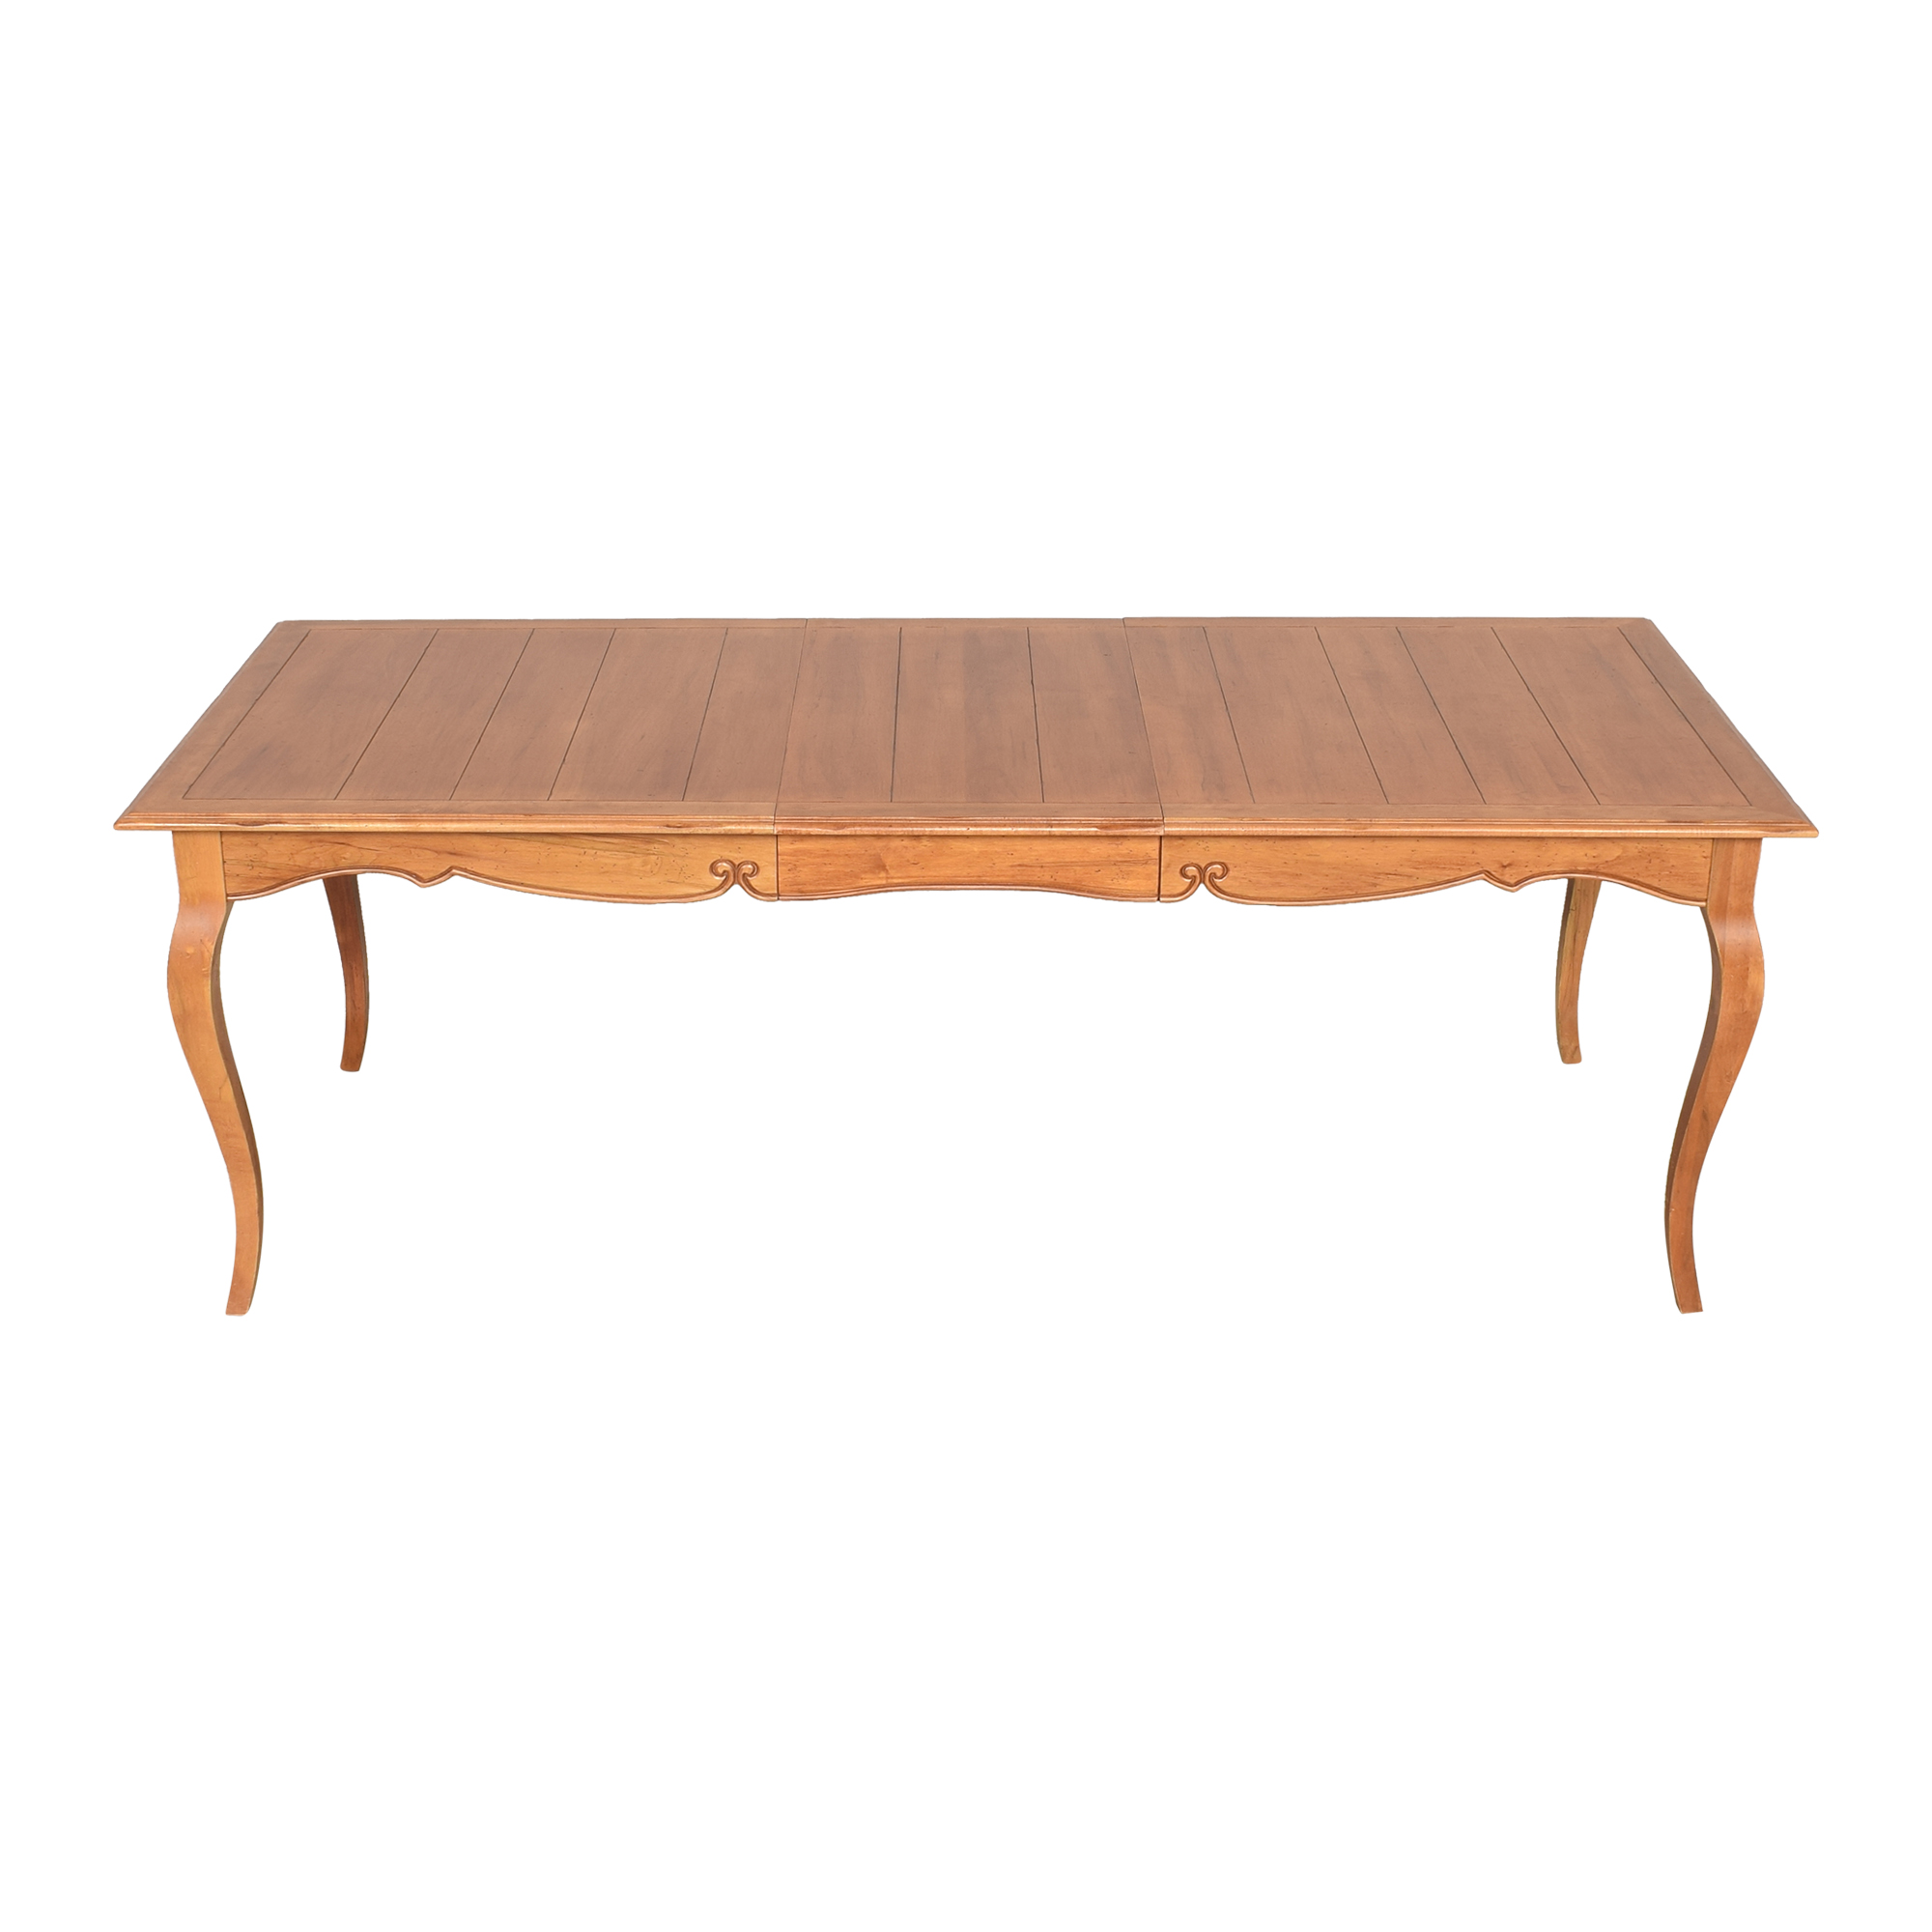 Ethan Allen Ethan Allen Legacy Collection Extendable Dining Table nyc